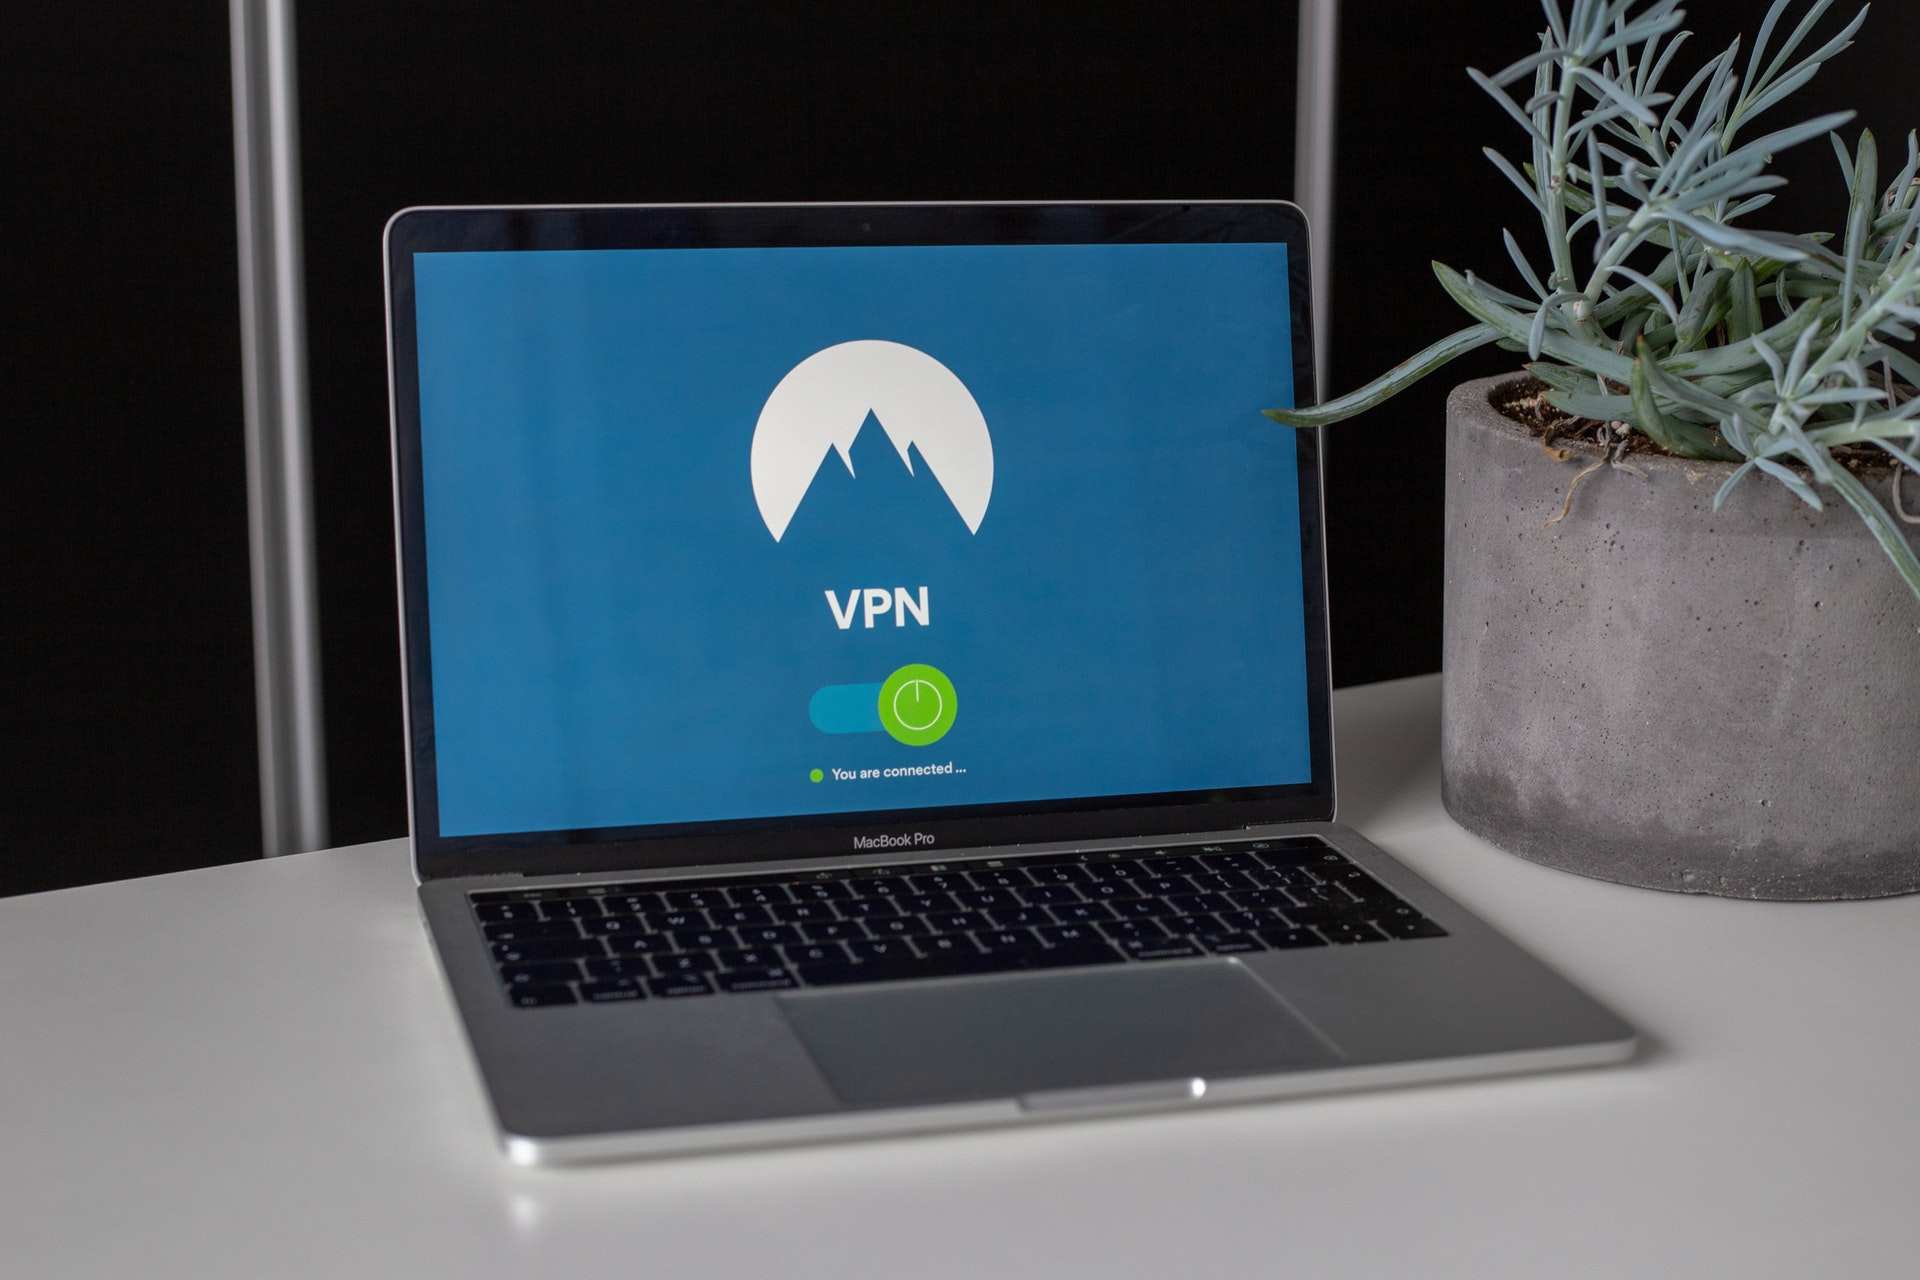 Finally, is it safe to use VPN?